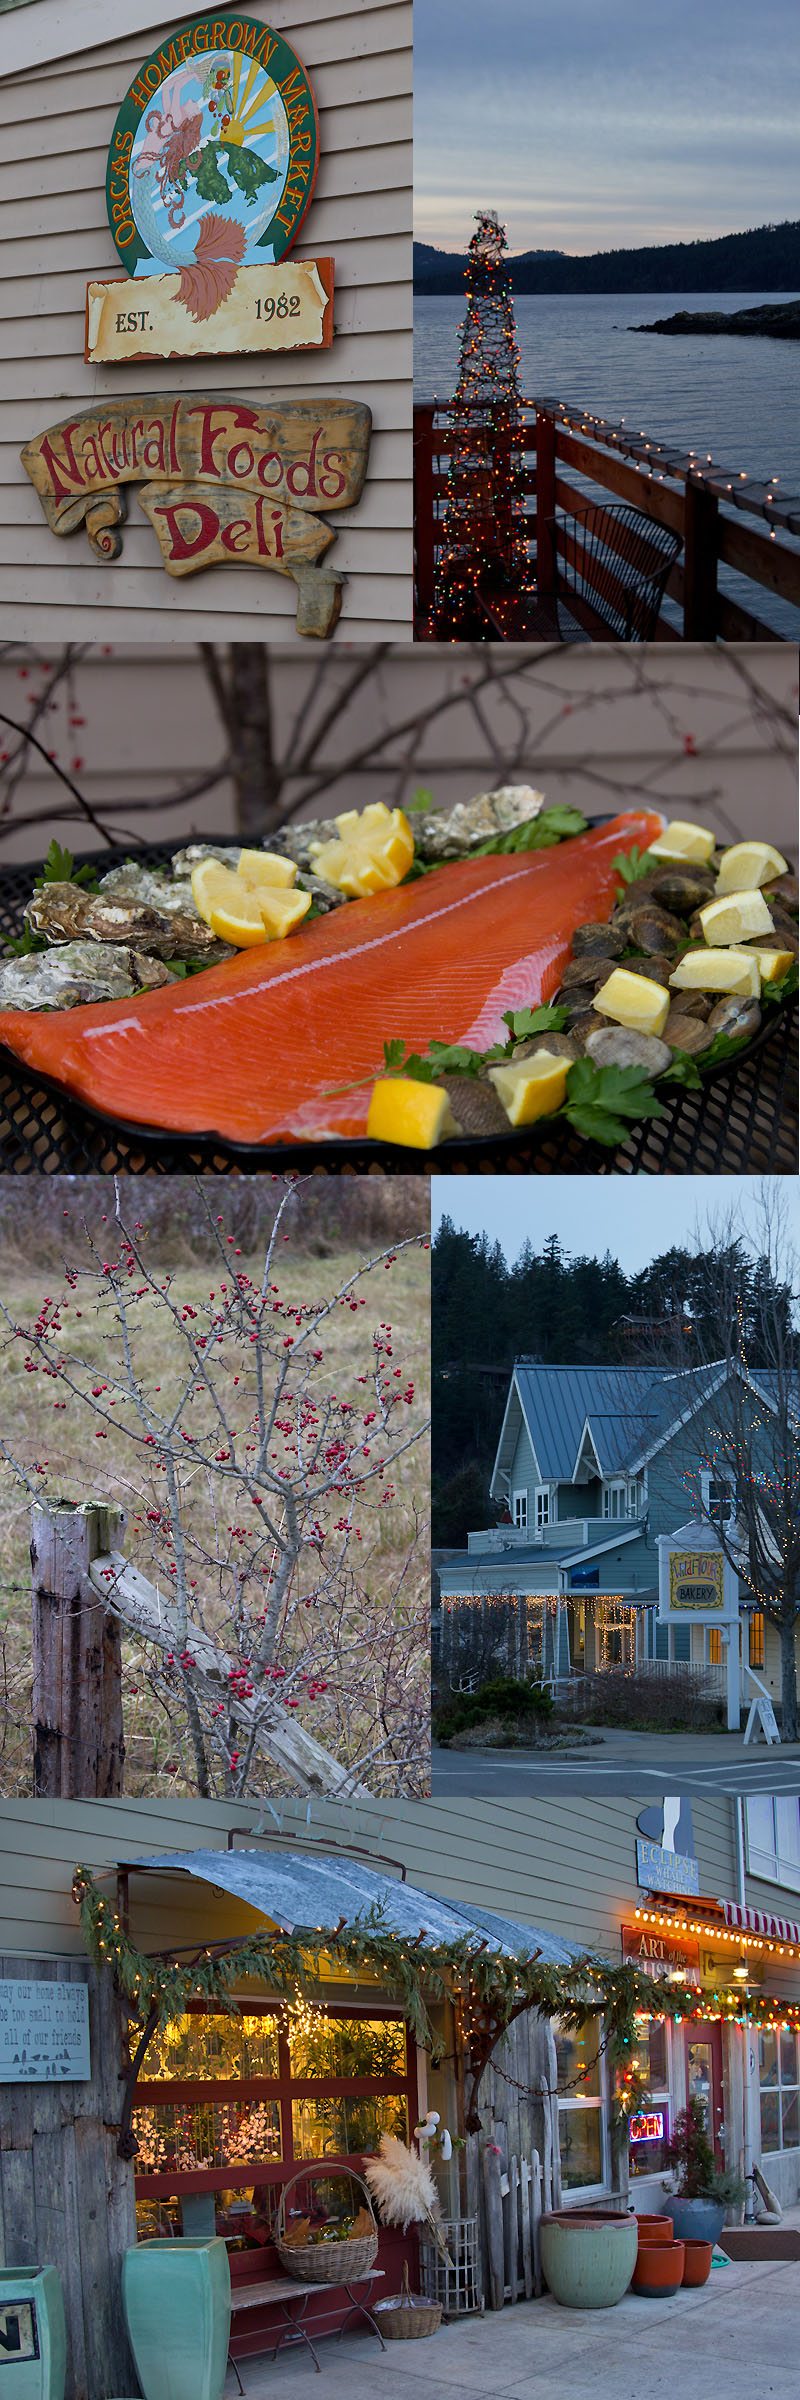 Fresh Seafood from the Orcas Island Home Grown Market